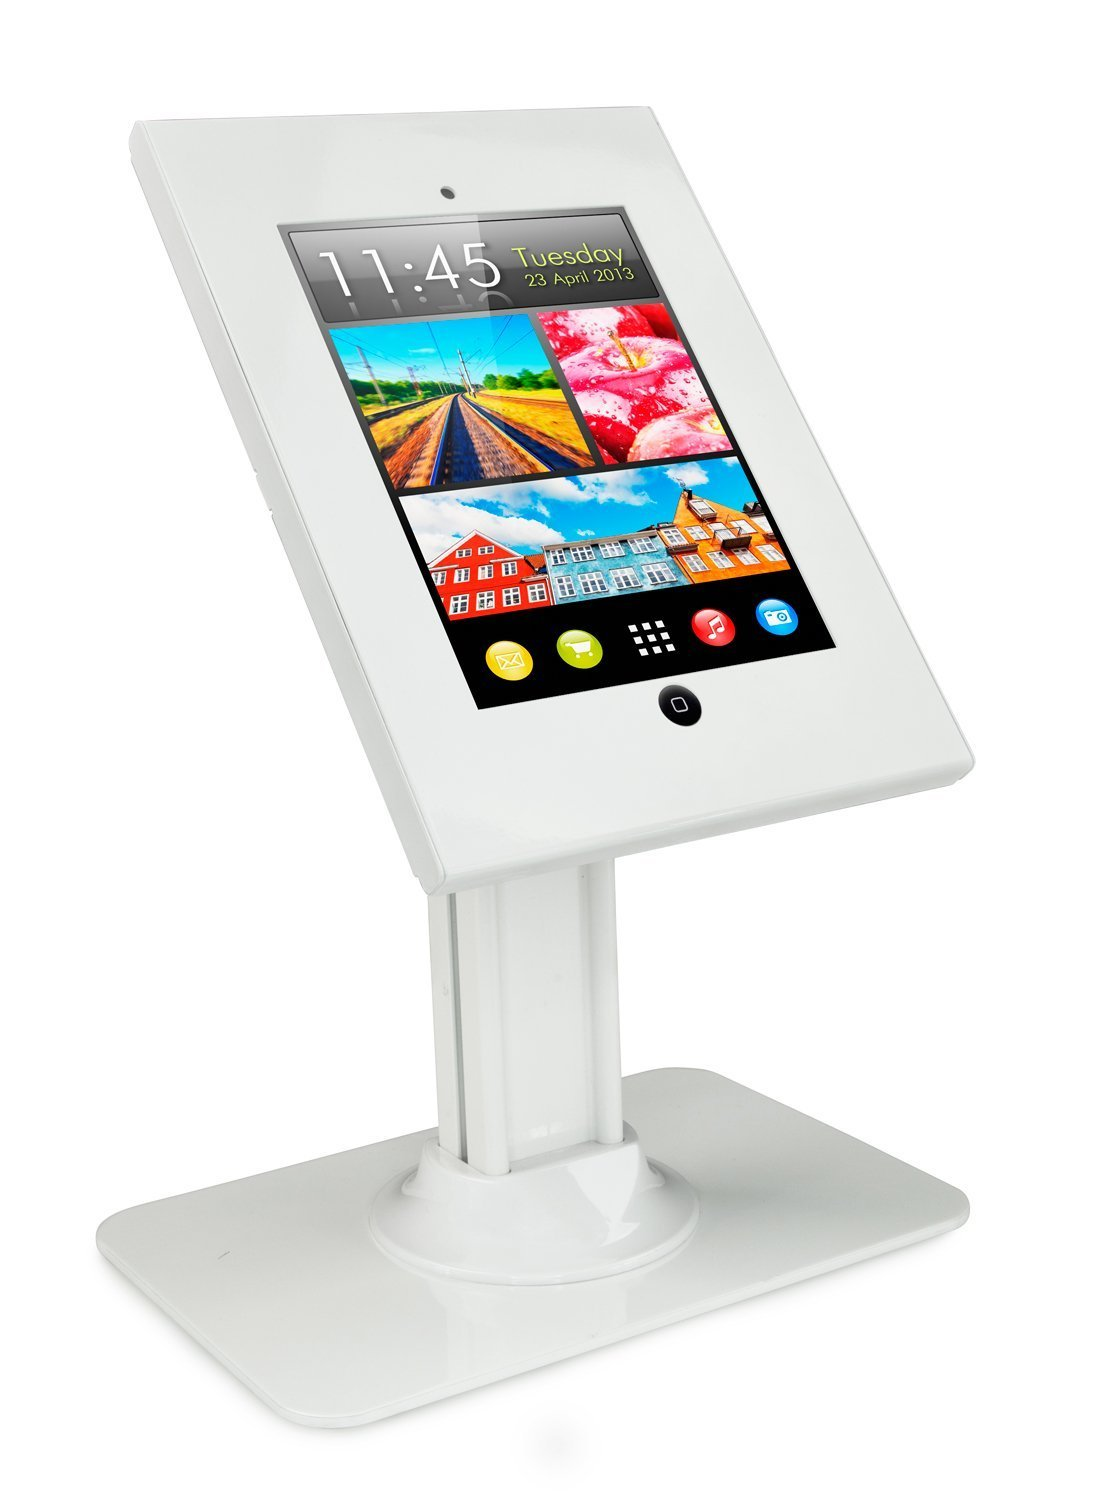 Mount-It! Anti-Theft iPad Table Mount, Full Motion Universal Tablet Stand, Fits iPad 2, 3, 4, iPad Air, and 9.7 Inch Tablets by Mount-It!